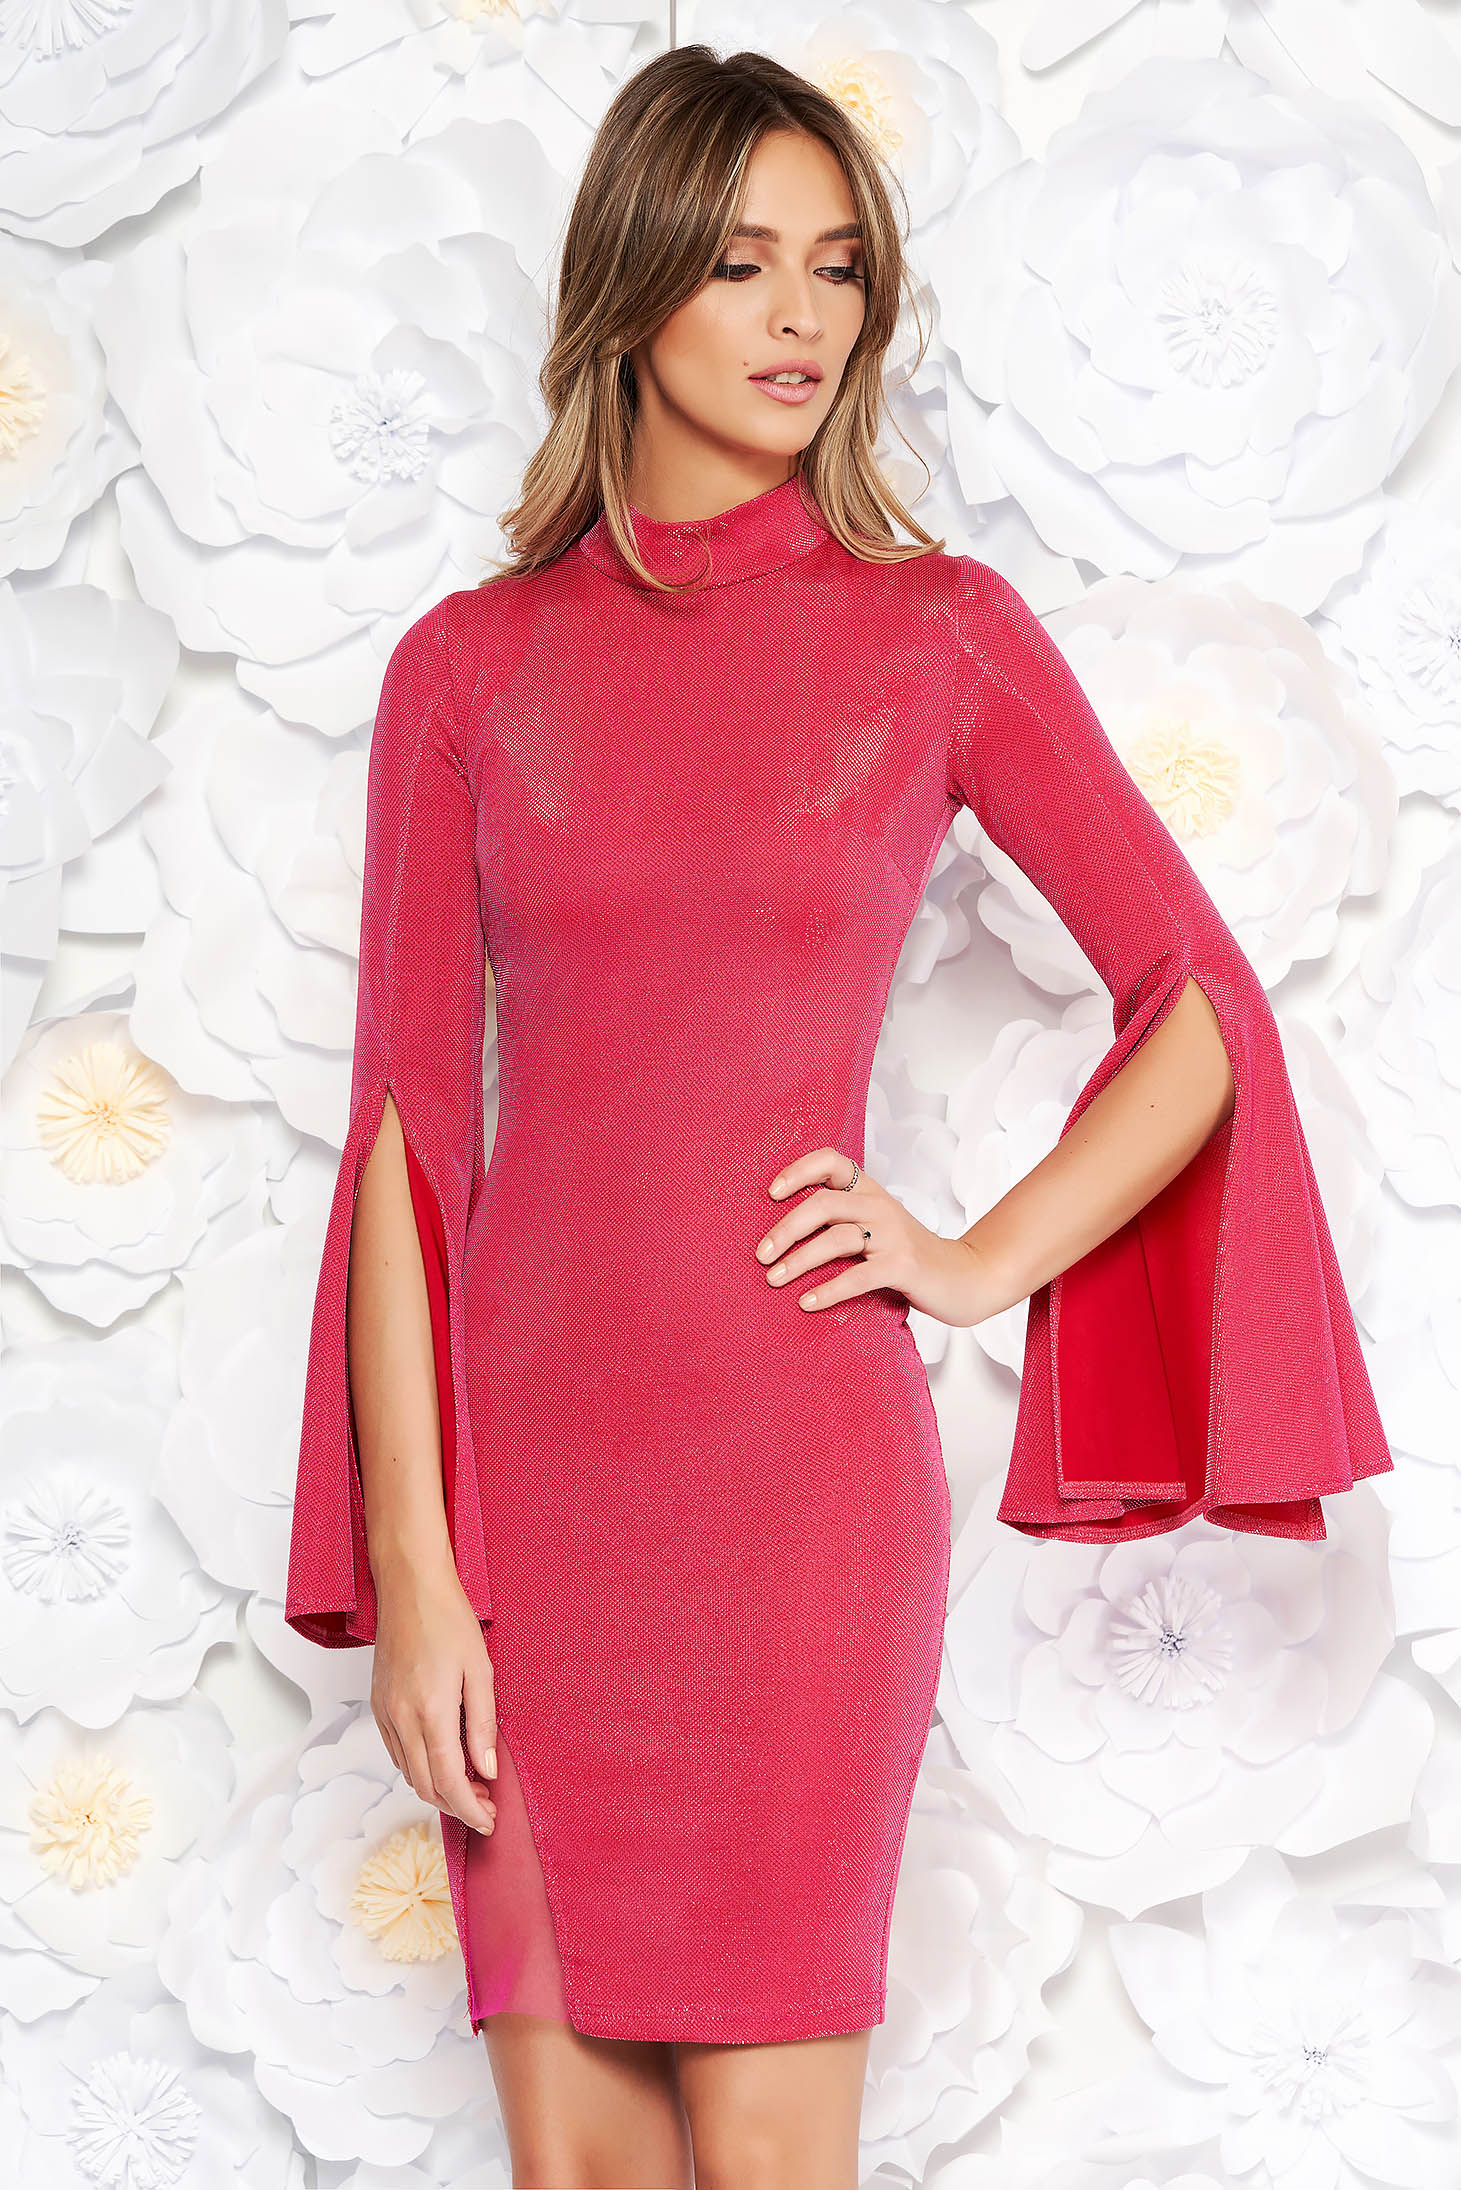 Artista pink dress short cut with bell sleeve from shiny fabric clubbing